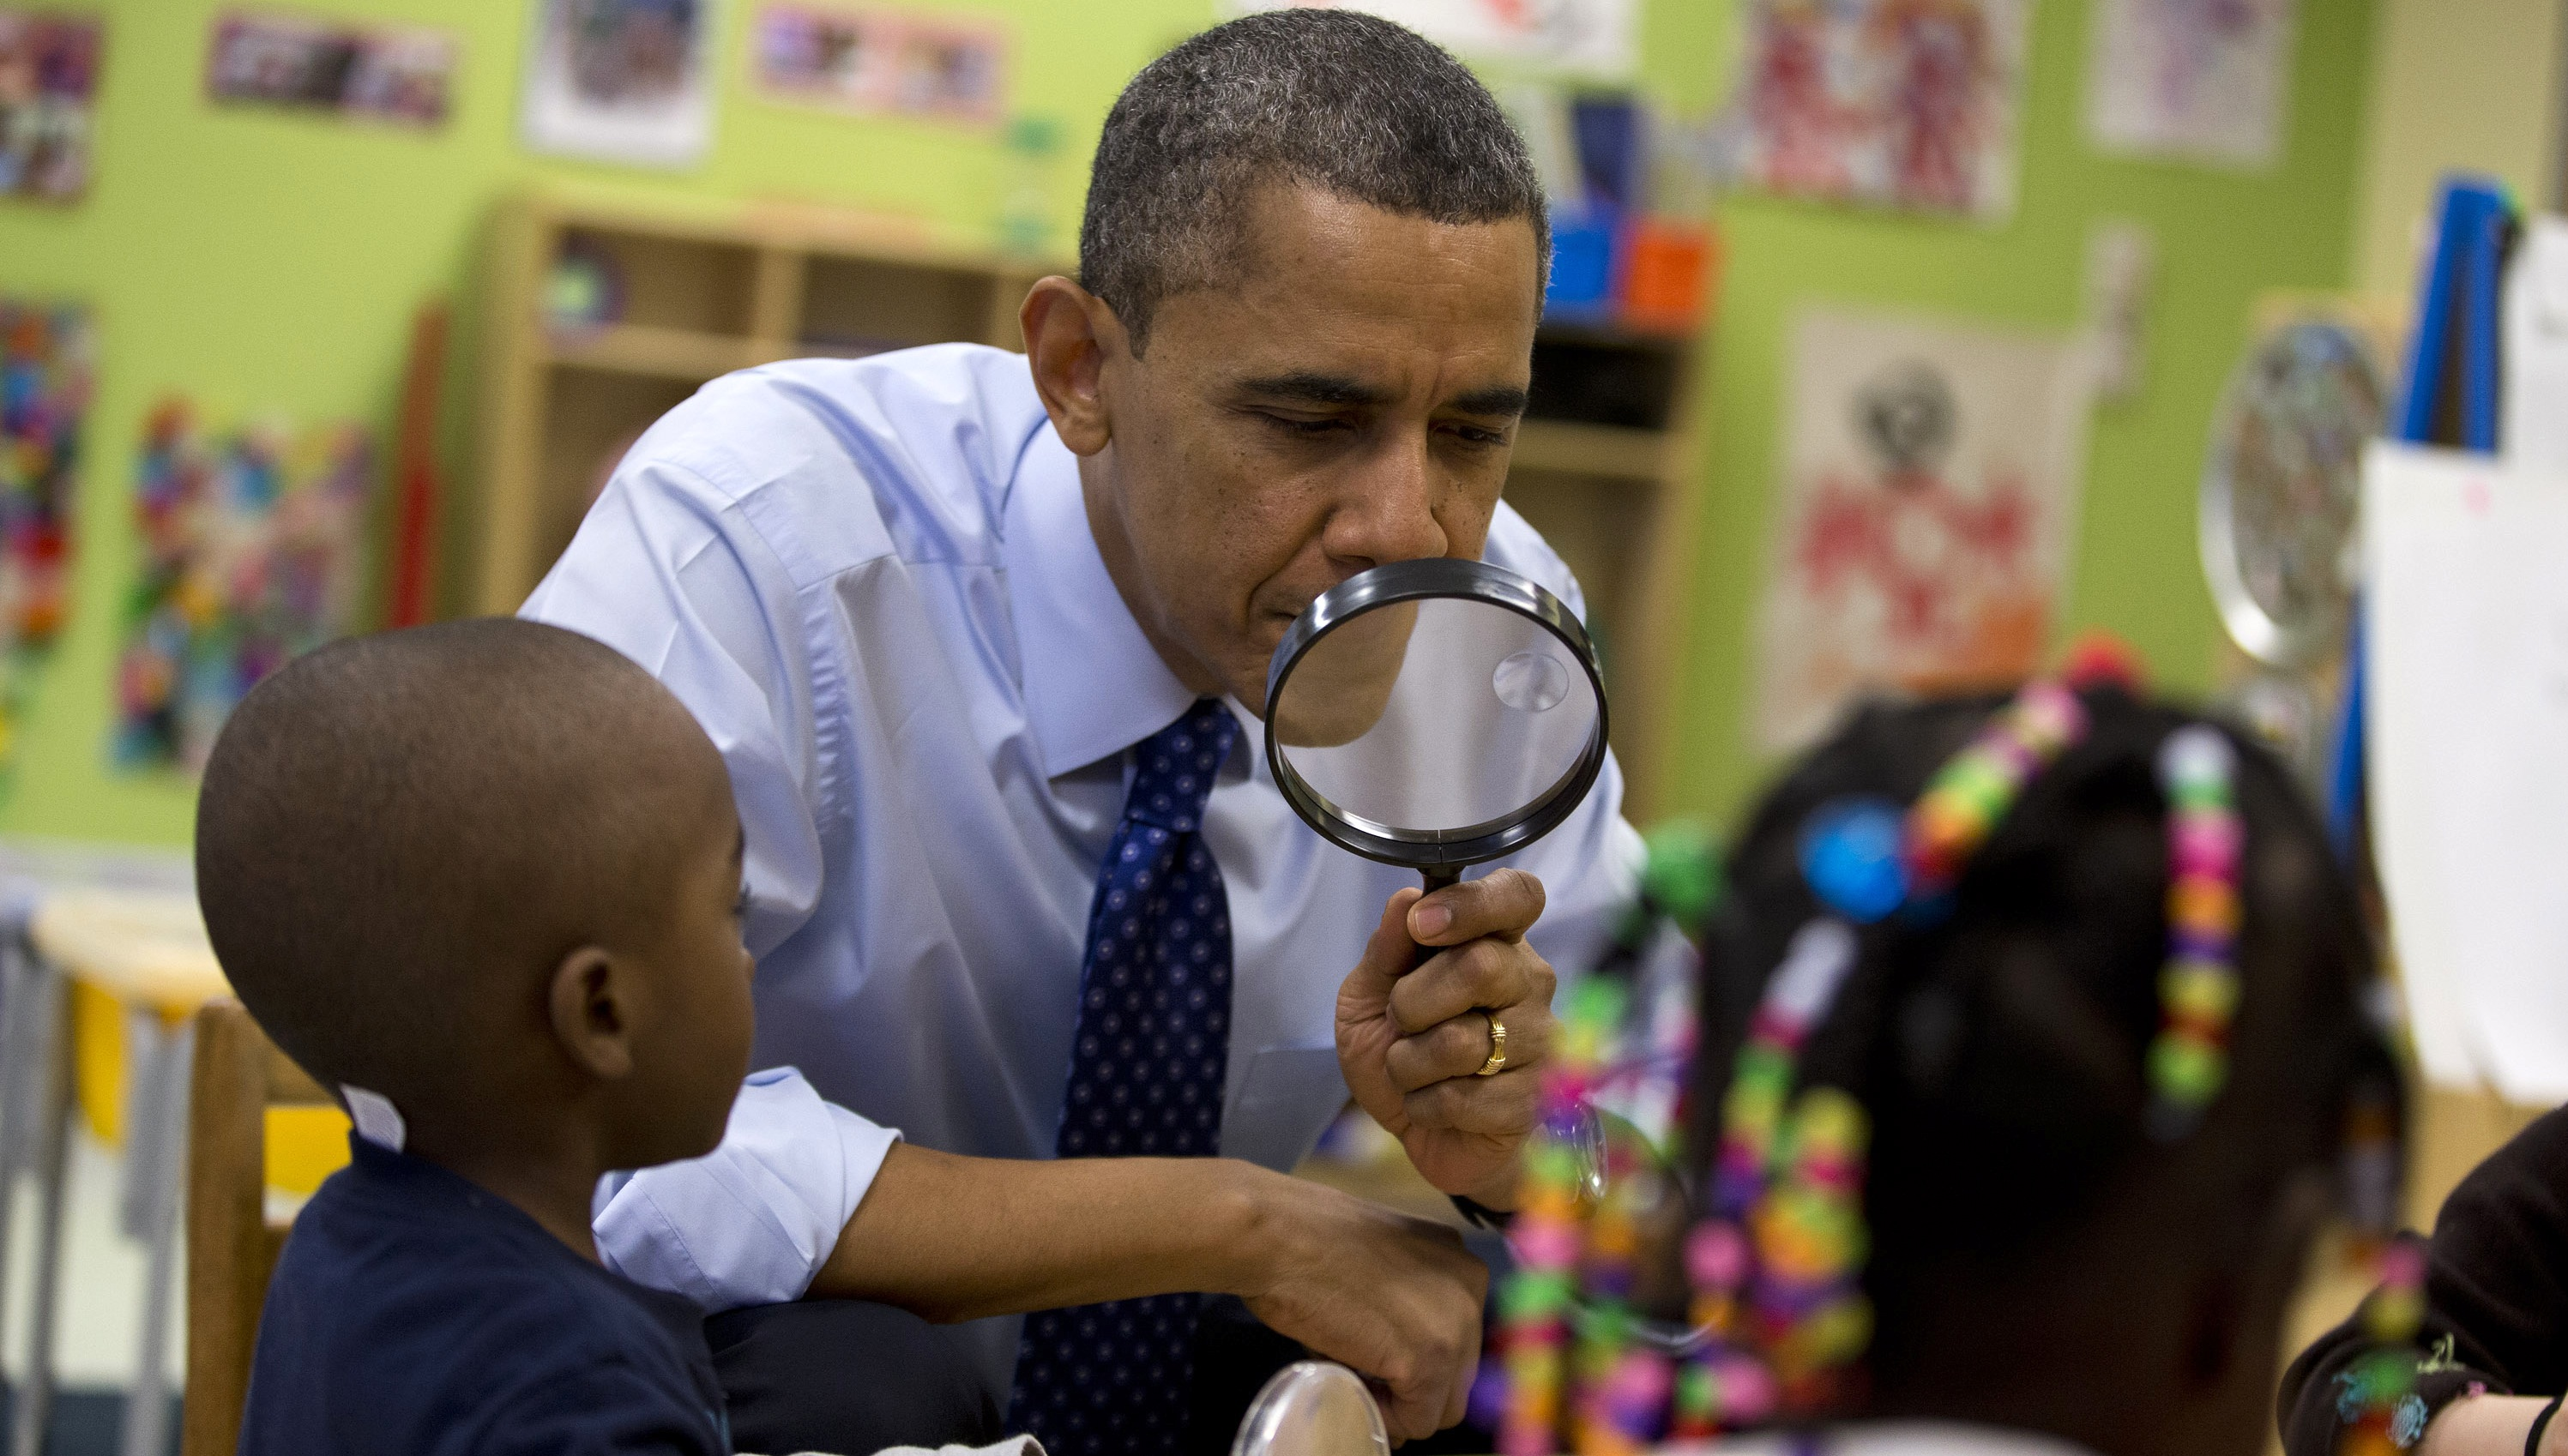 President Barack Obama looks through a magnifying glass during a learning game at a pre-kindergarten classroom at College Heights Early Childhood Learning Center in Decatur, Ga., Thursday, Feb. 14, 2013. The president is traveling to promote his economic and educational plan that he highlighted in his State of the Union address. (AP Photo/ Evan Vucci)